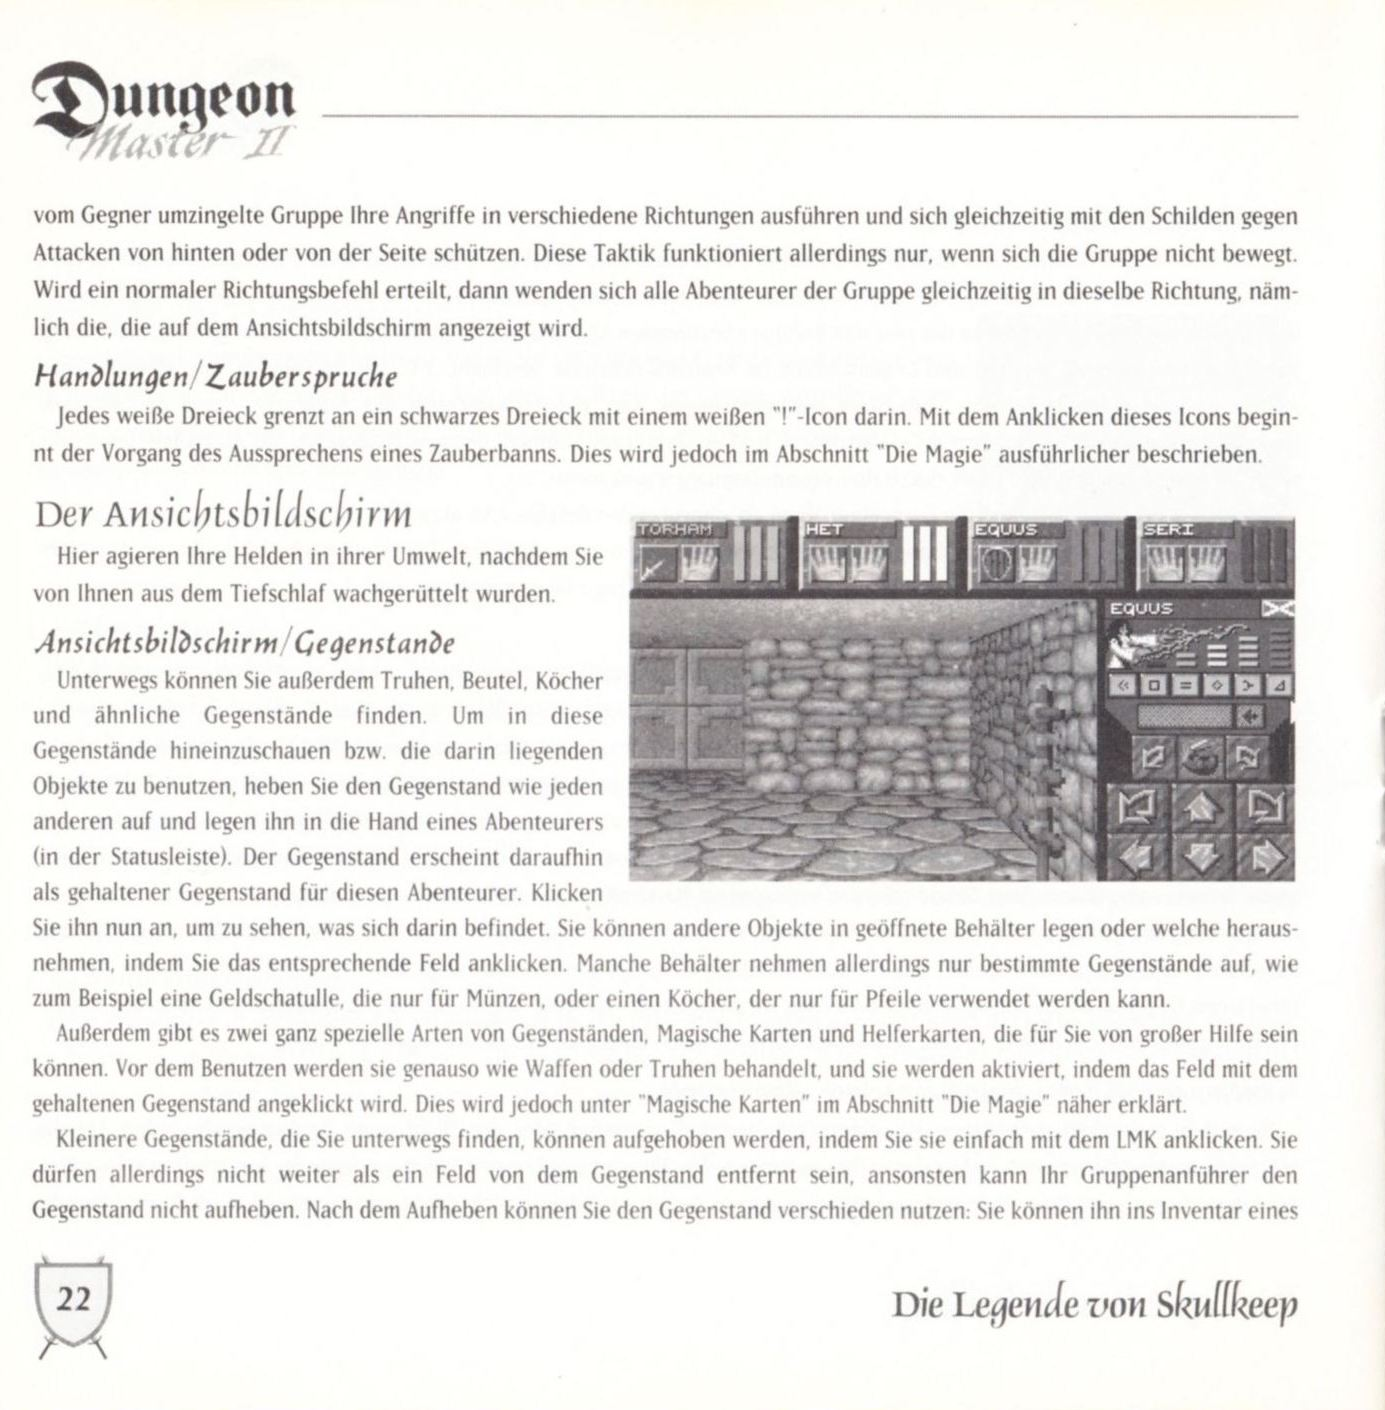 Game - Dungeon Master II - DE - PC - Blackmarket With Booklet - Booklet - Page 024 - Scan